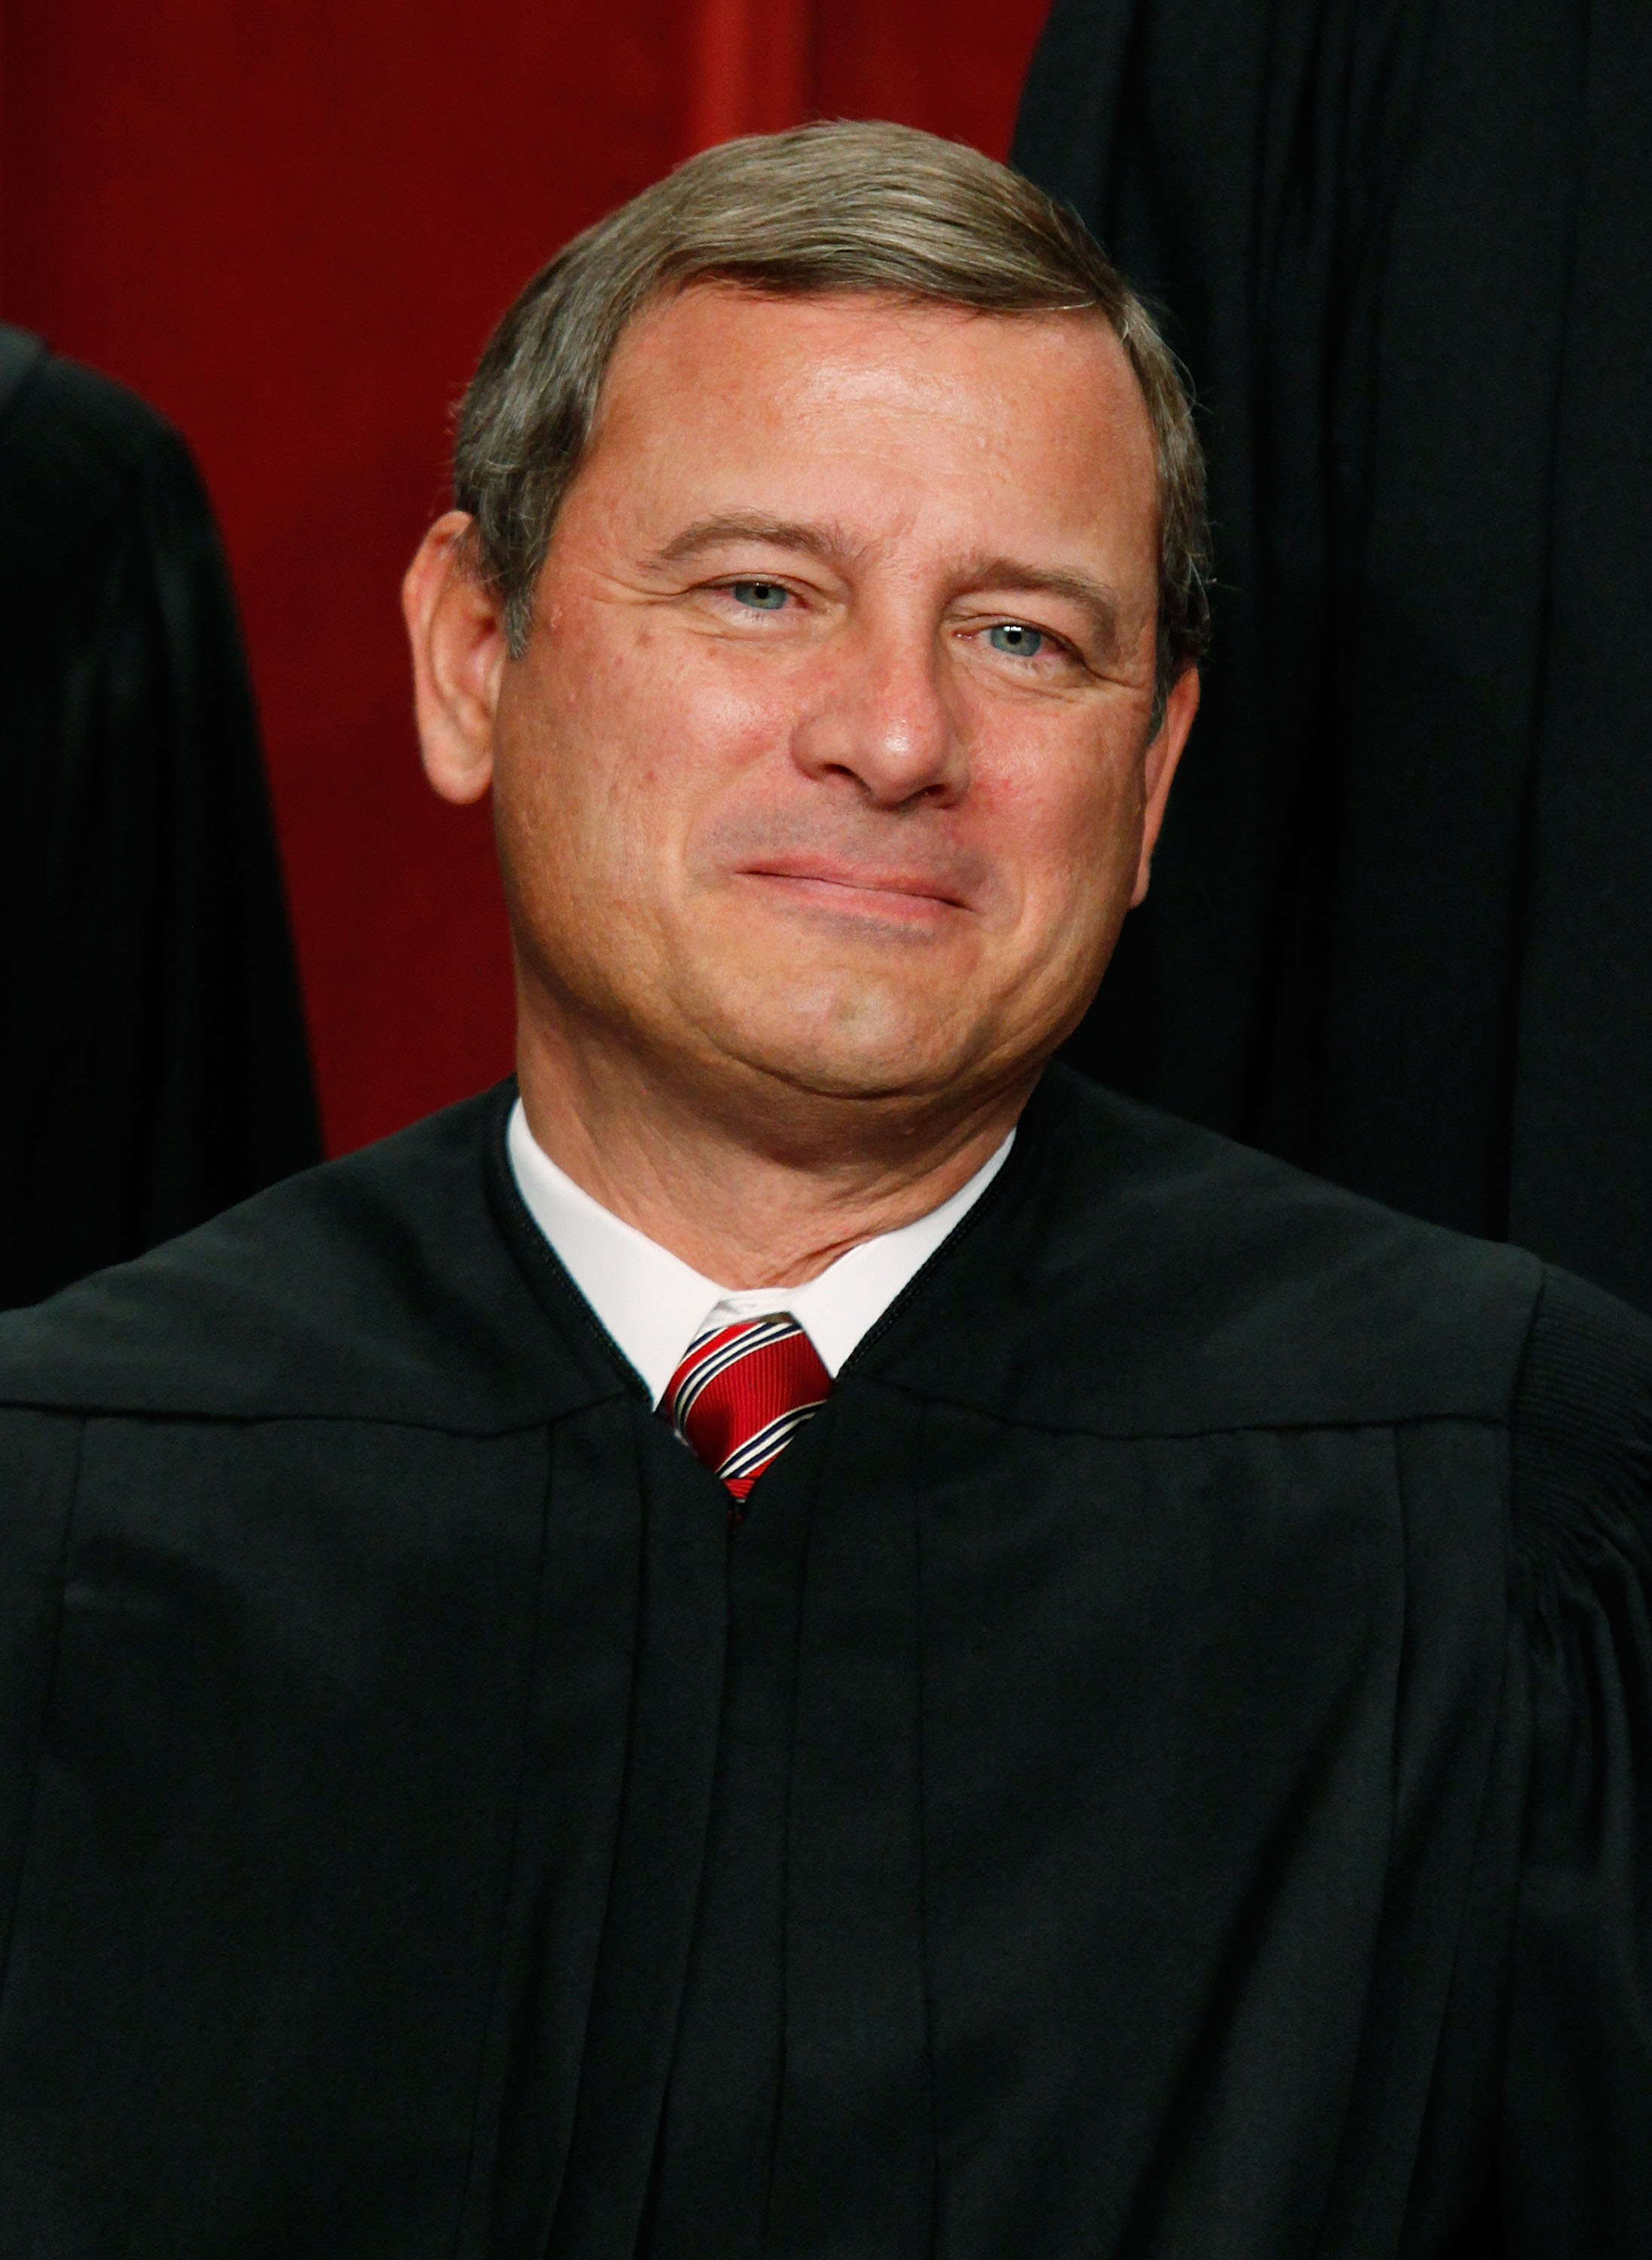 Chief Justice John G. Roberts poses for a group photograph at the Supreme Court building on Sept. 29, 2009 in Washington DC.